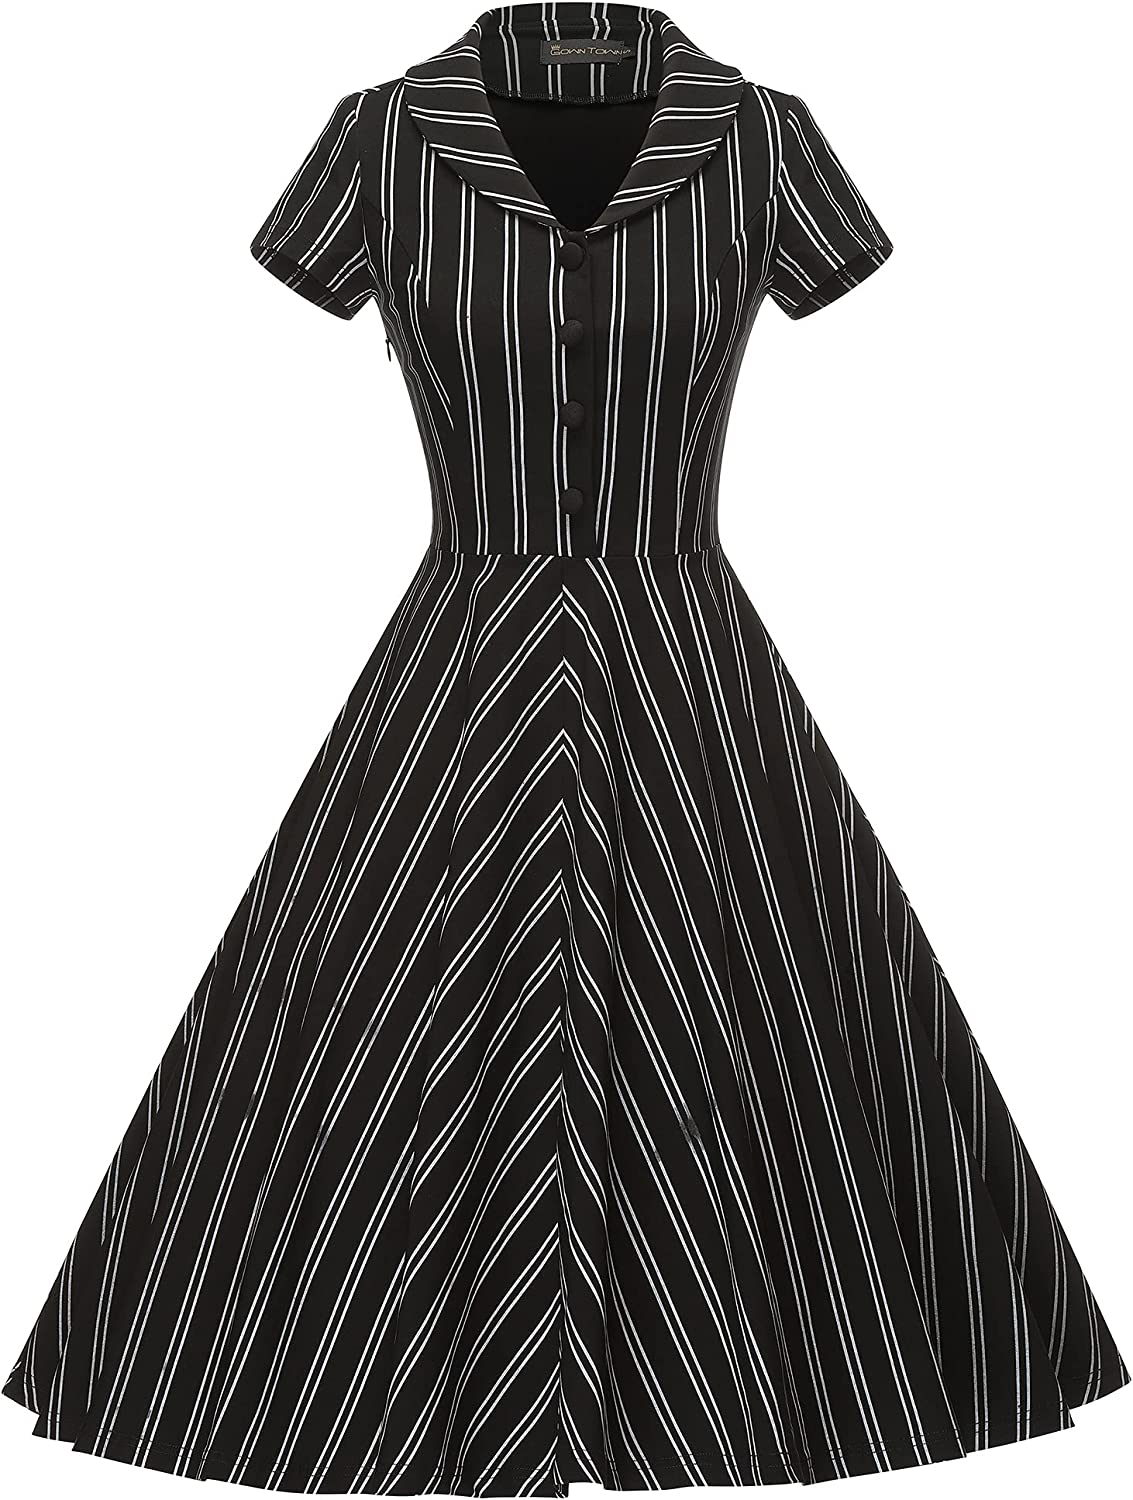 Easy Retro Halloween Costumes – Last Minute Ideas GownTown Womens 1950s Vintage Plaid Swing Dress with Pockets  AT vintagedancer.com